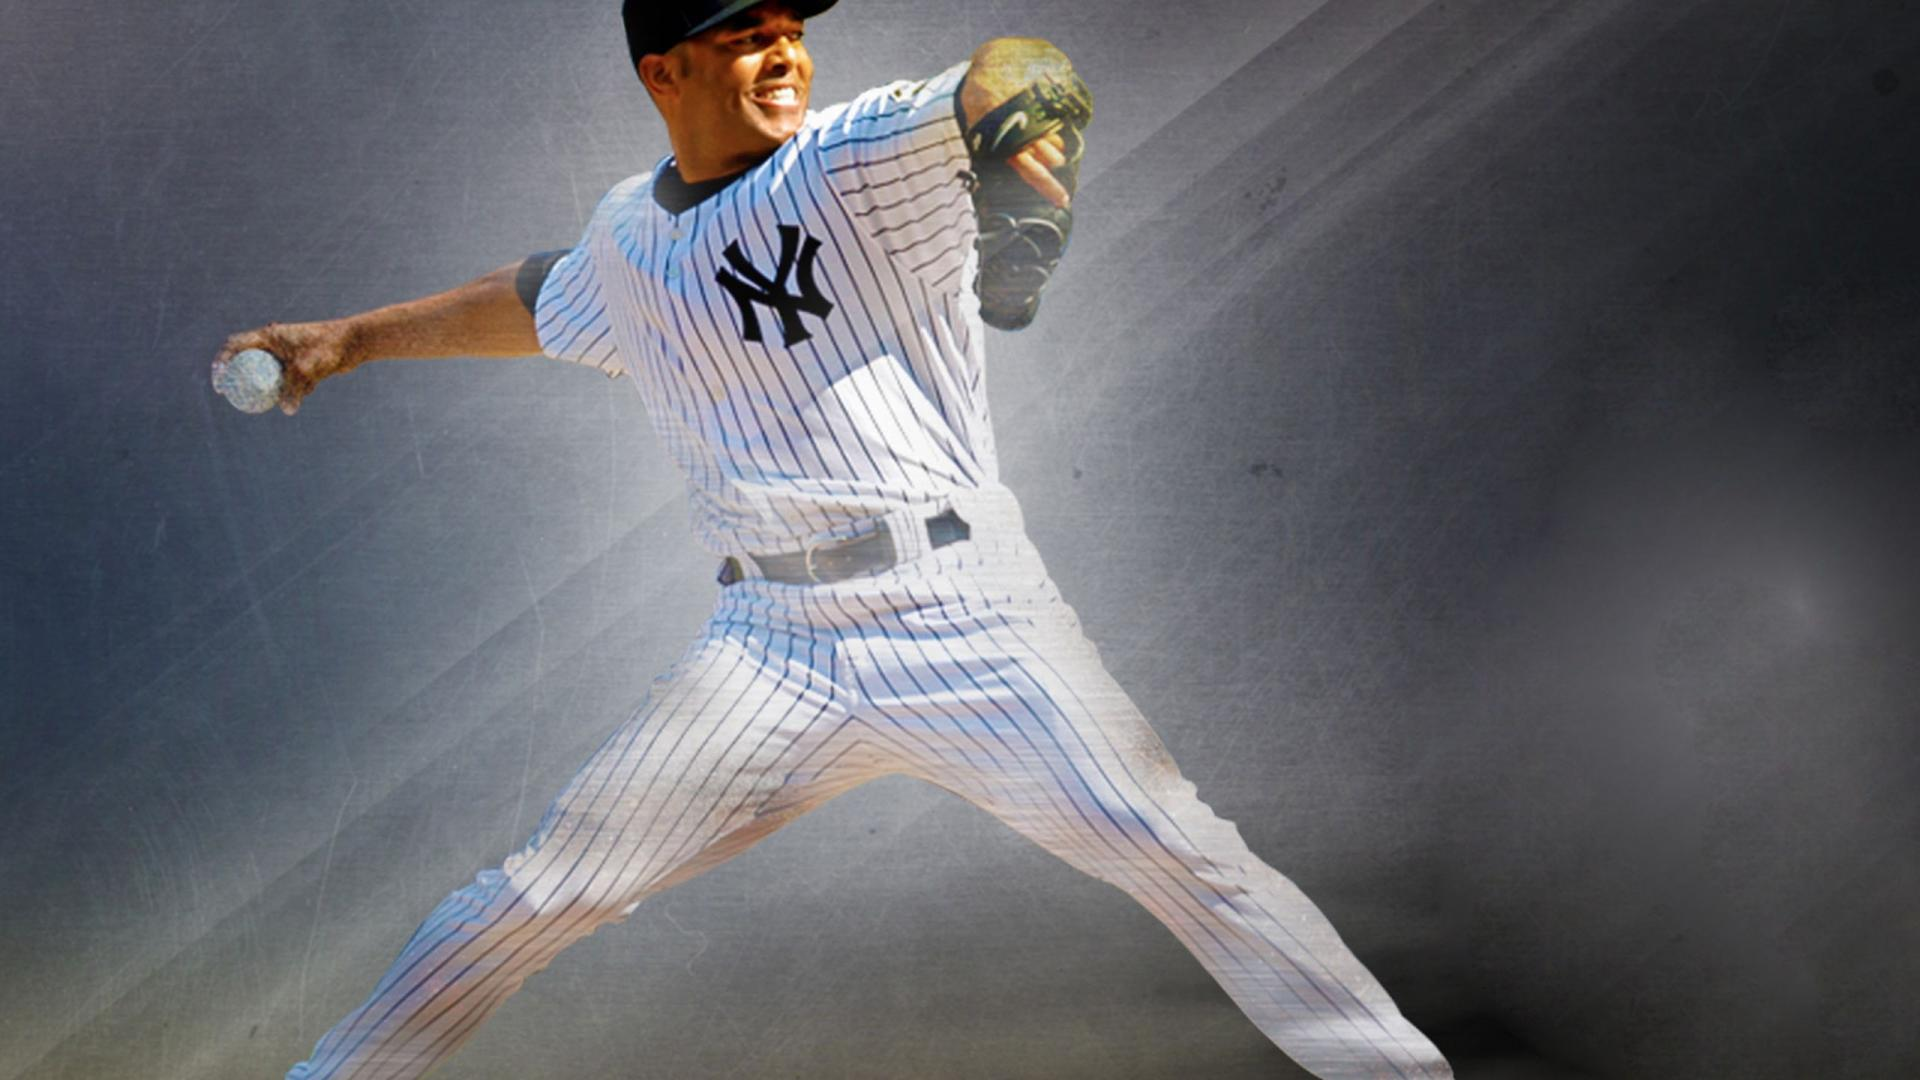 8589130439371-yankees-mariano-rivera-wallpaper-hd.jpg